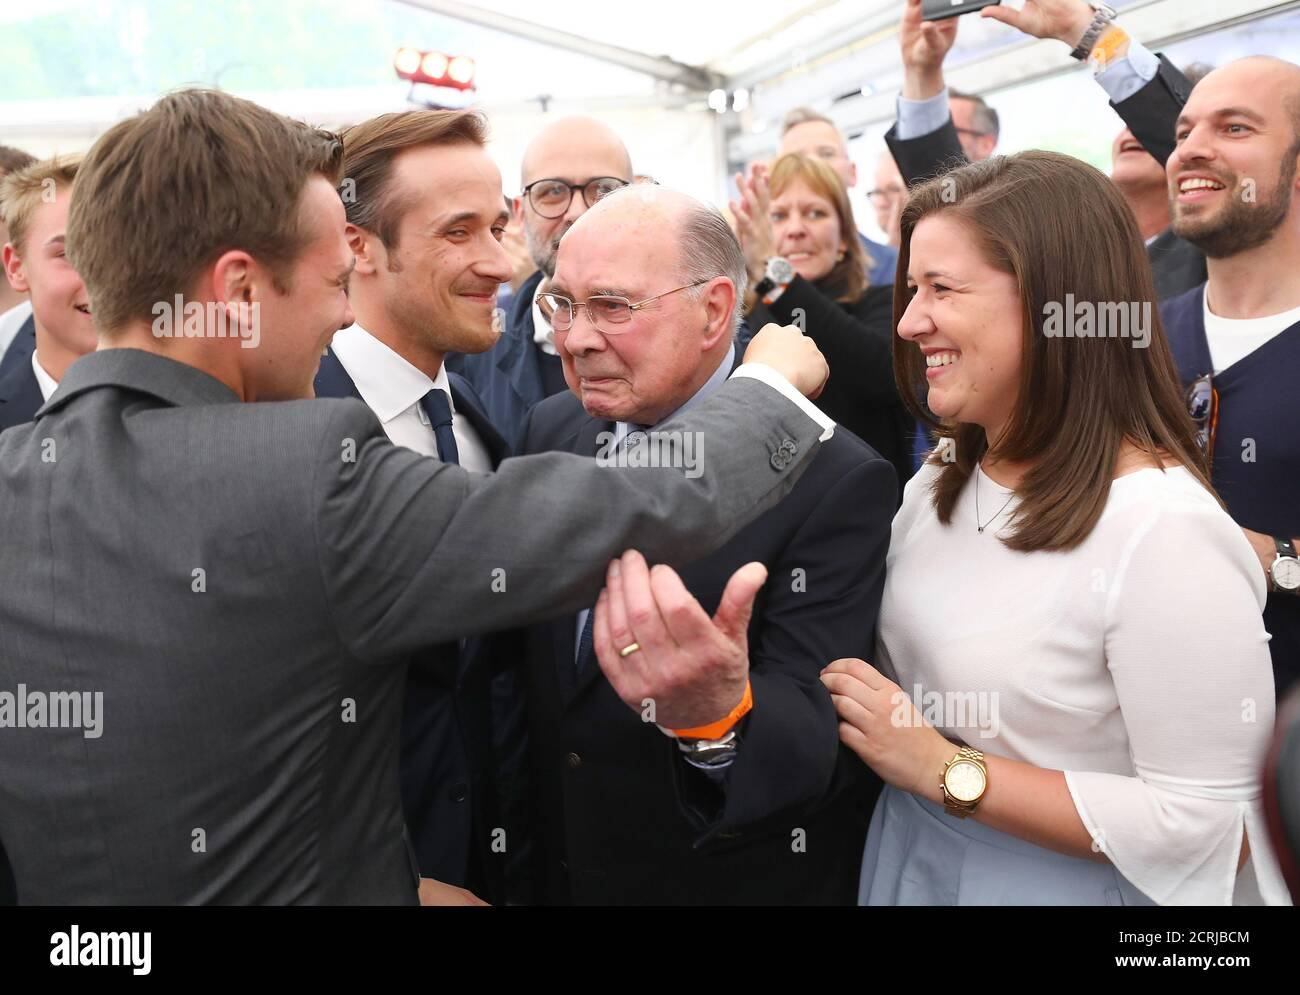 Johannes Laschet High Resolution Stock Photography And Images Alamy